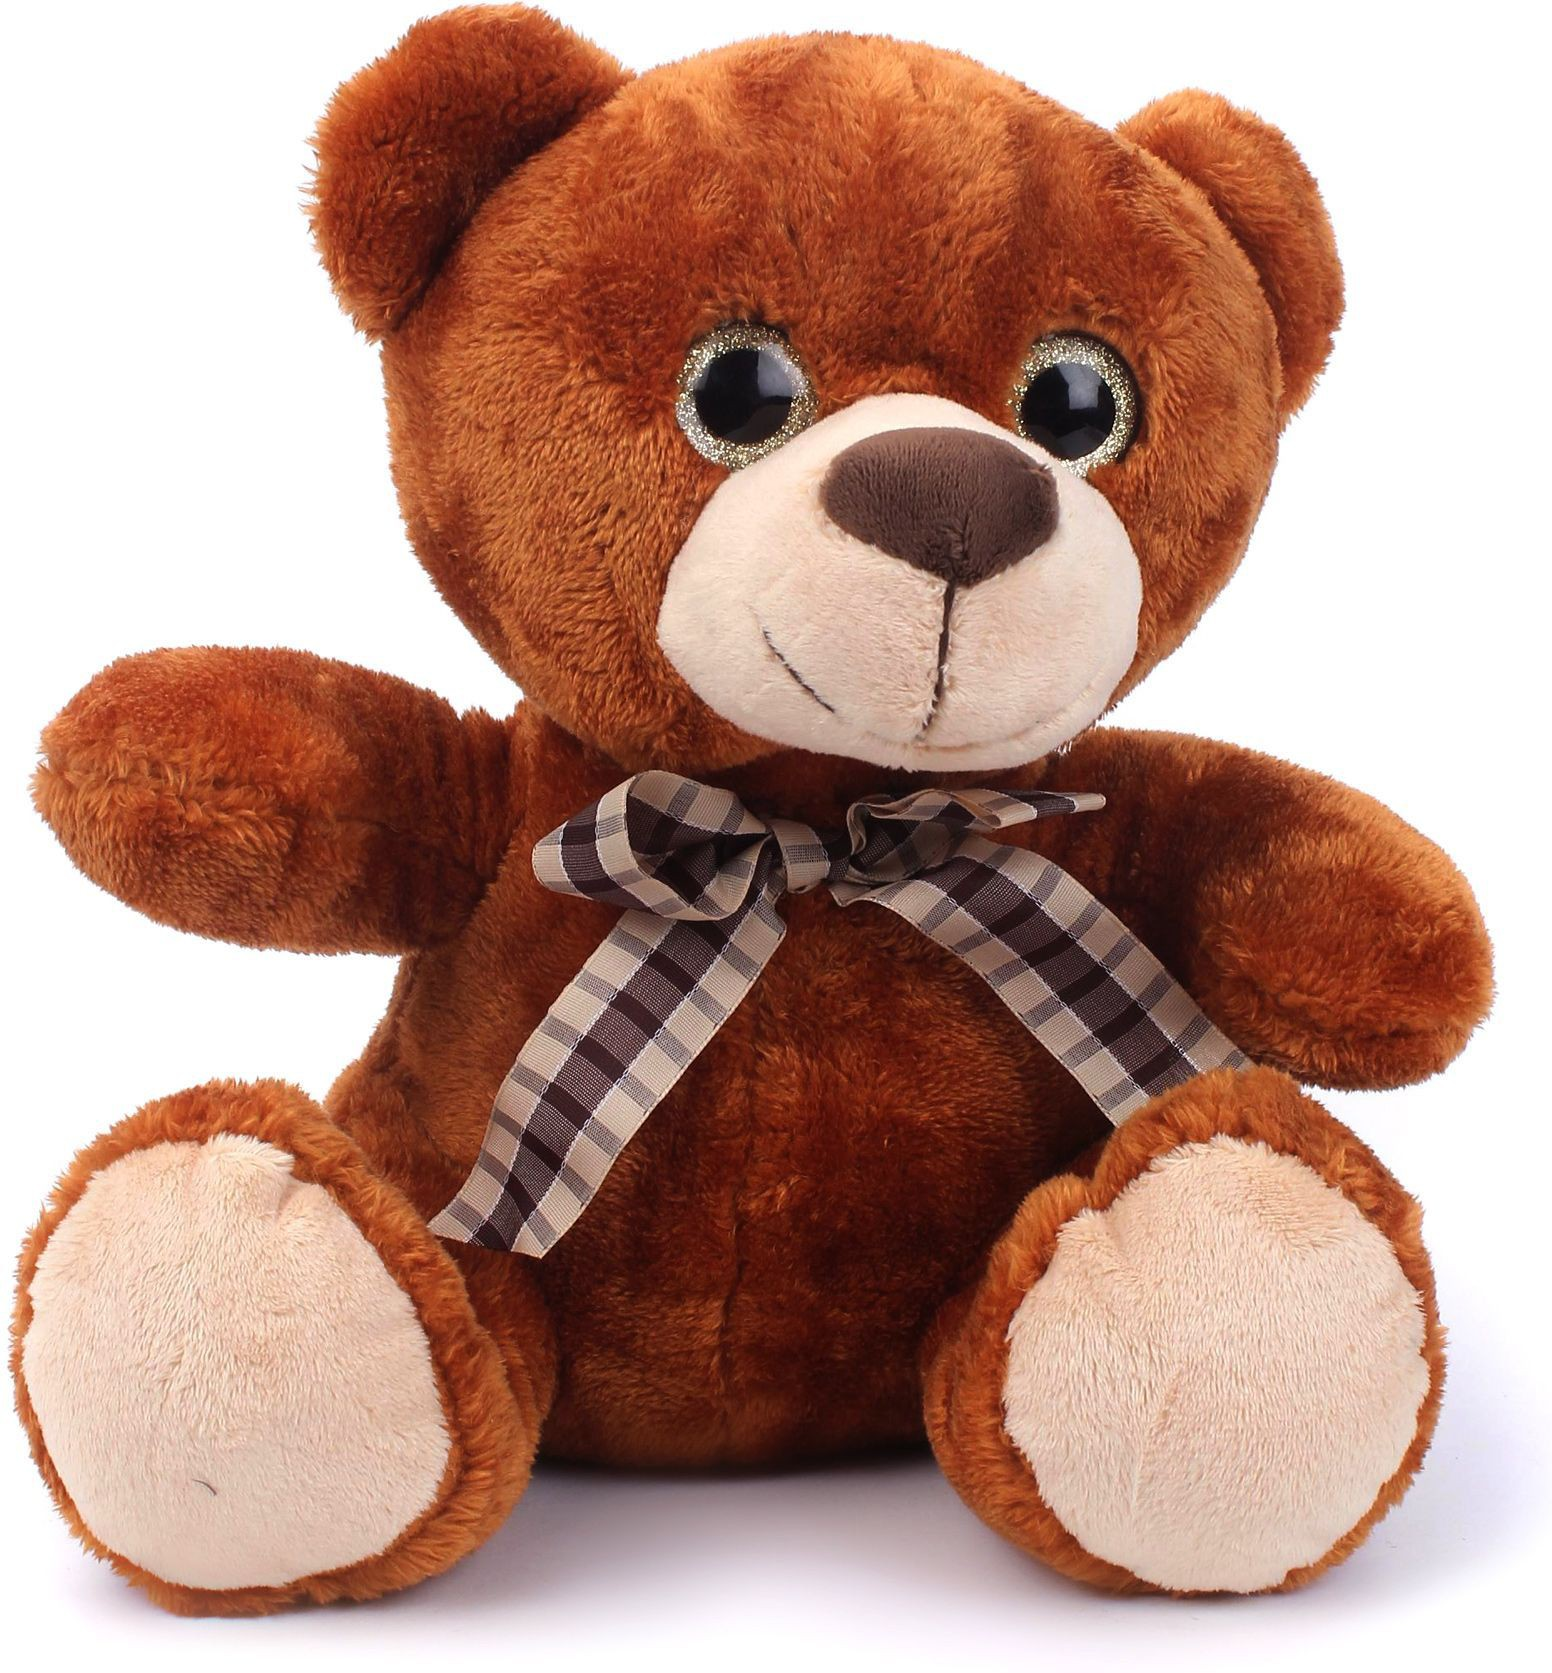 Deals - Delhi - Soft Toys <br> Disney, Archies.<br> Category - toys_school_supplies<br> Business - Flipkart.com